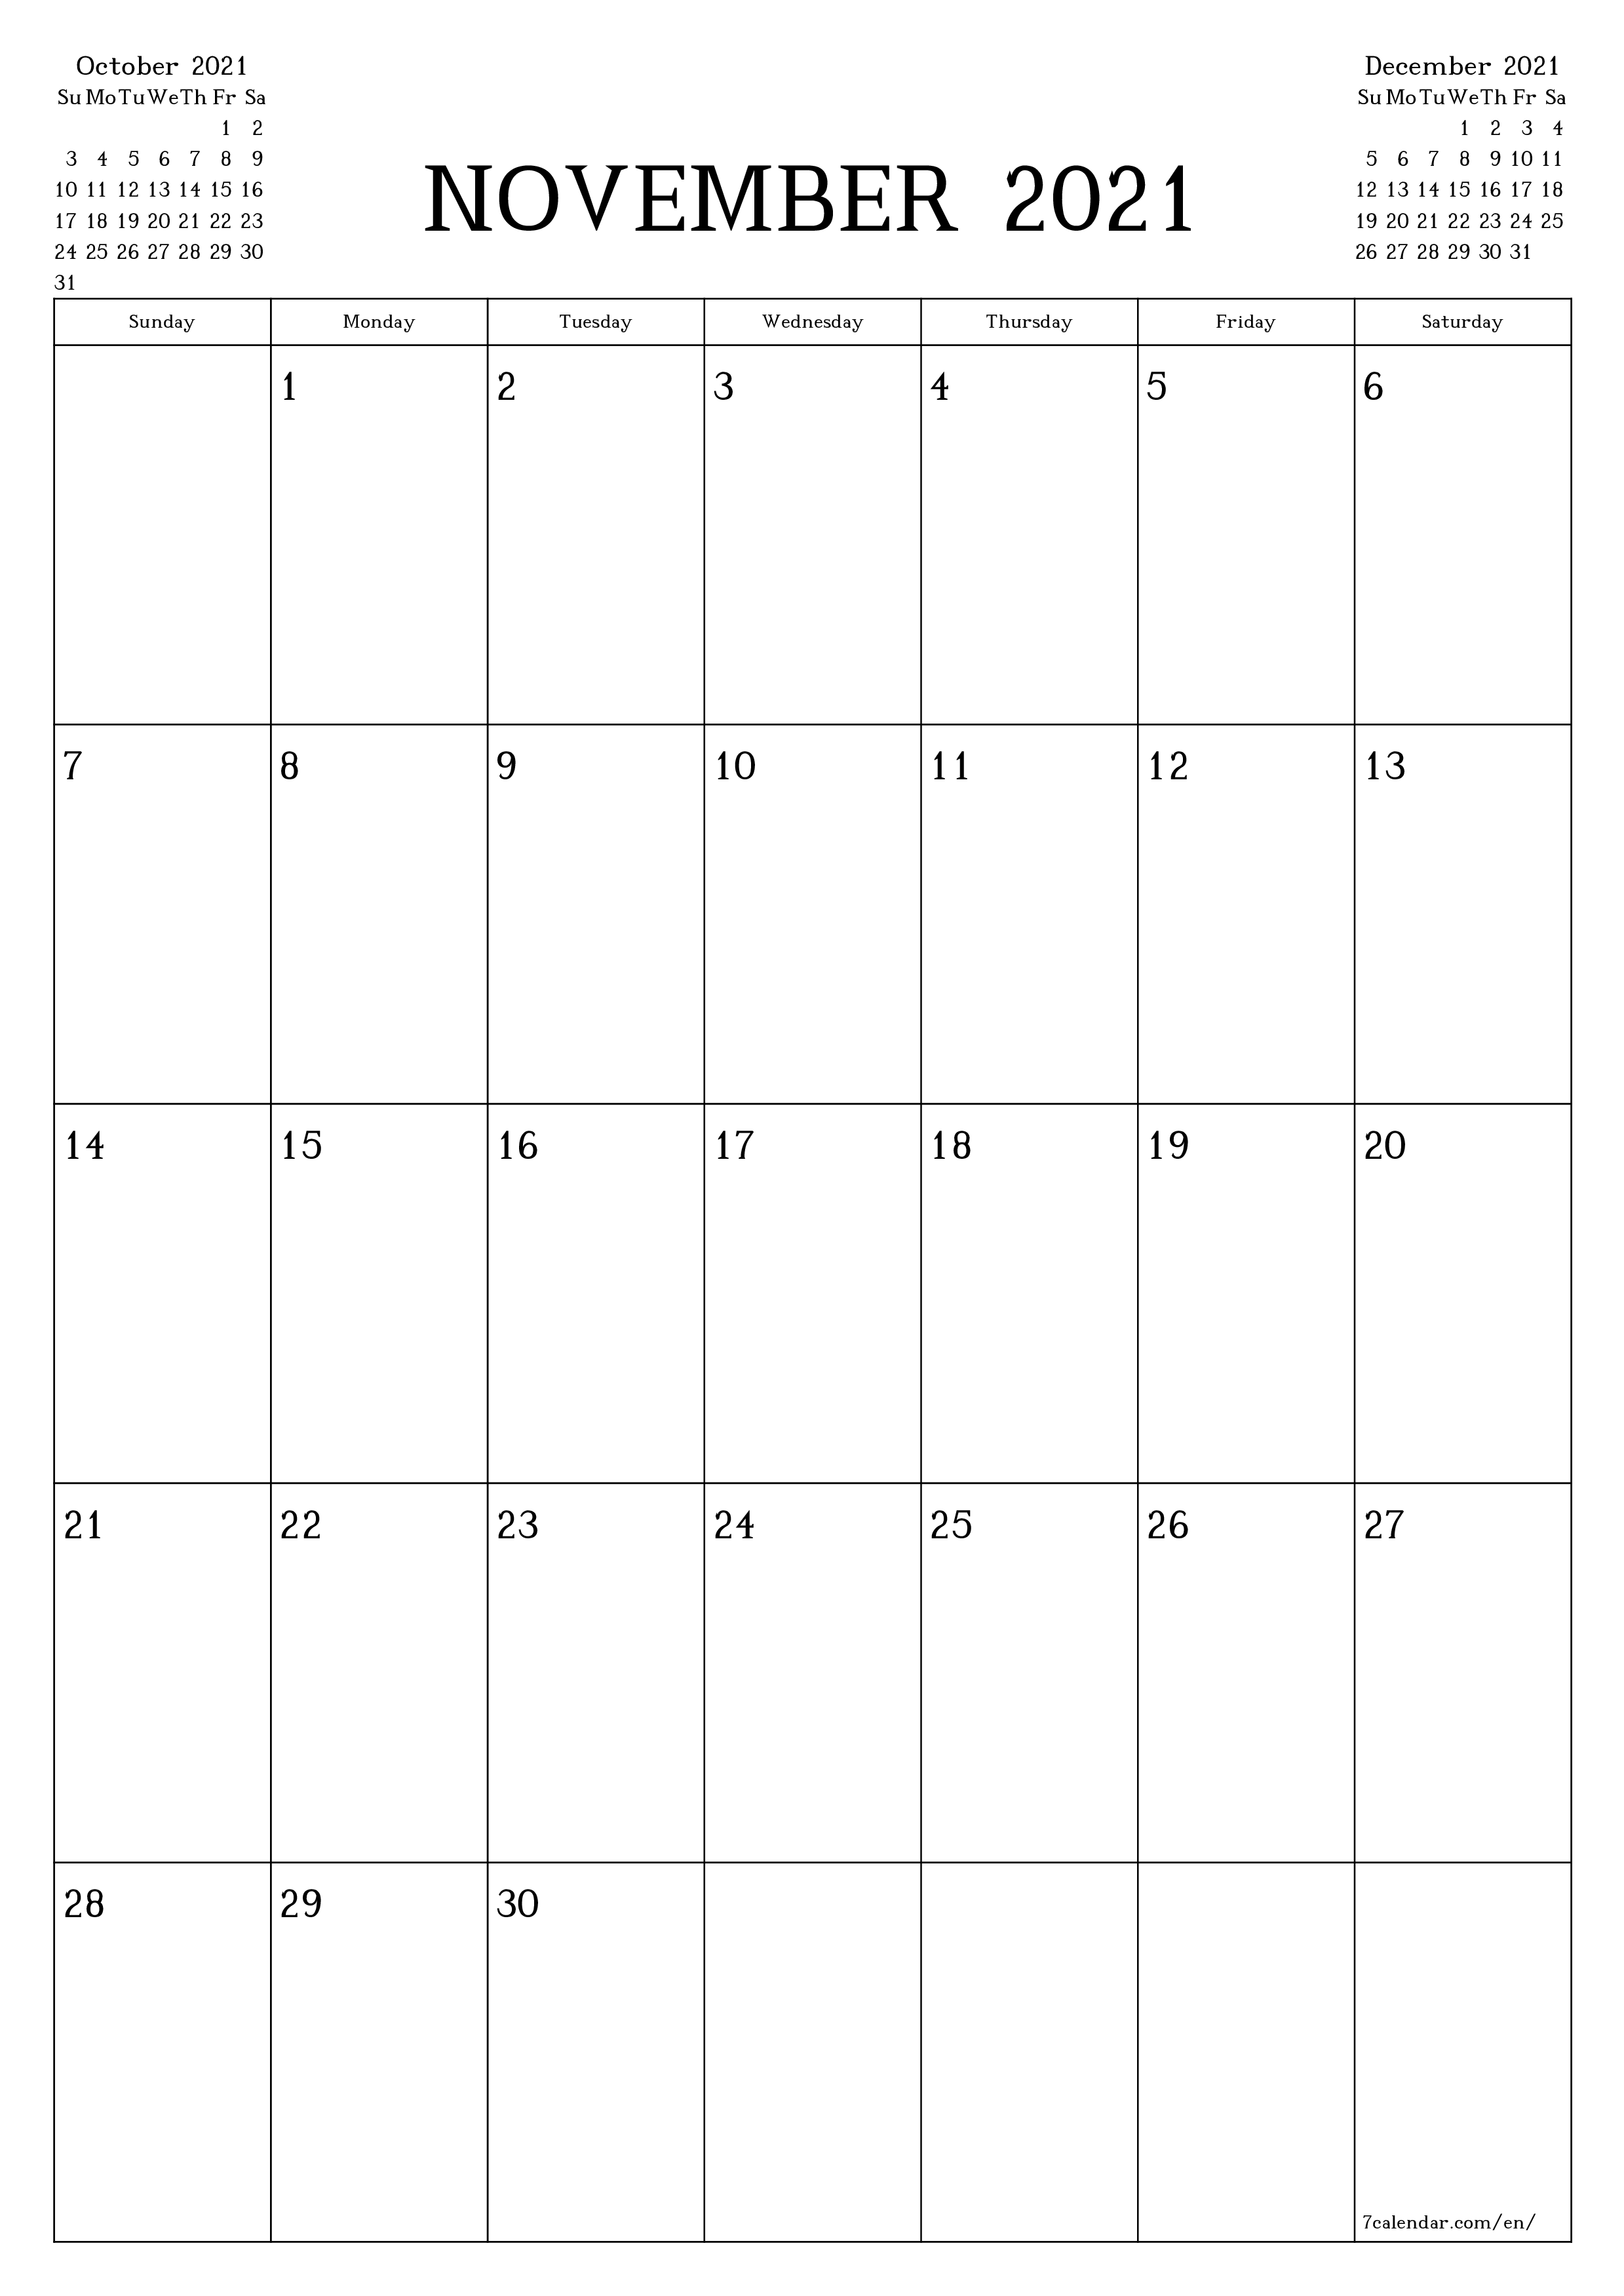 Blank monthly calendar planner for month November 2021 with notes save and print to PDF  - 7calendar.com